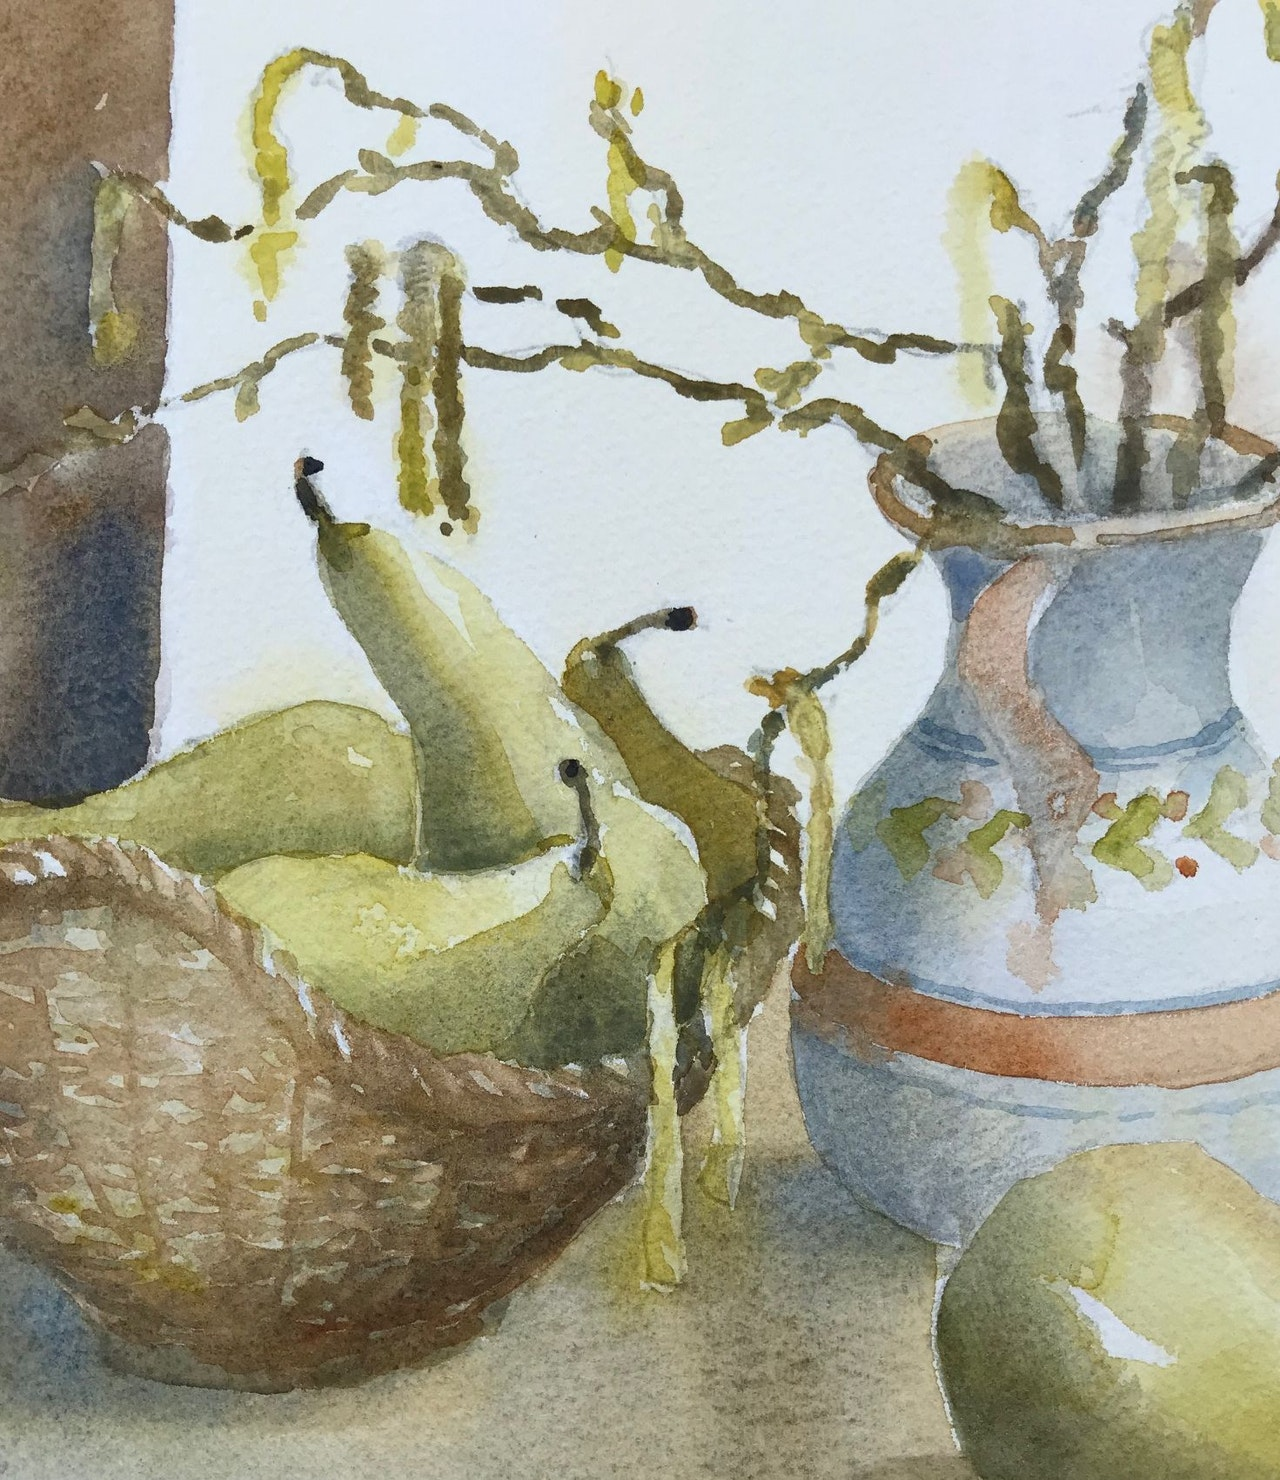 JJ5 catkins and pears, close up detail